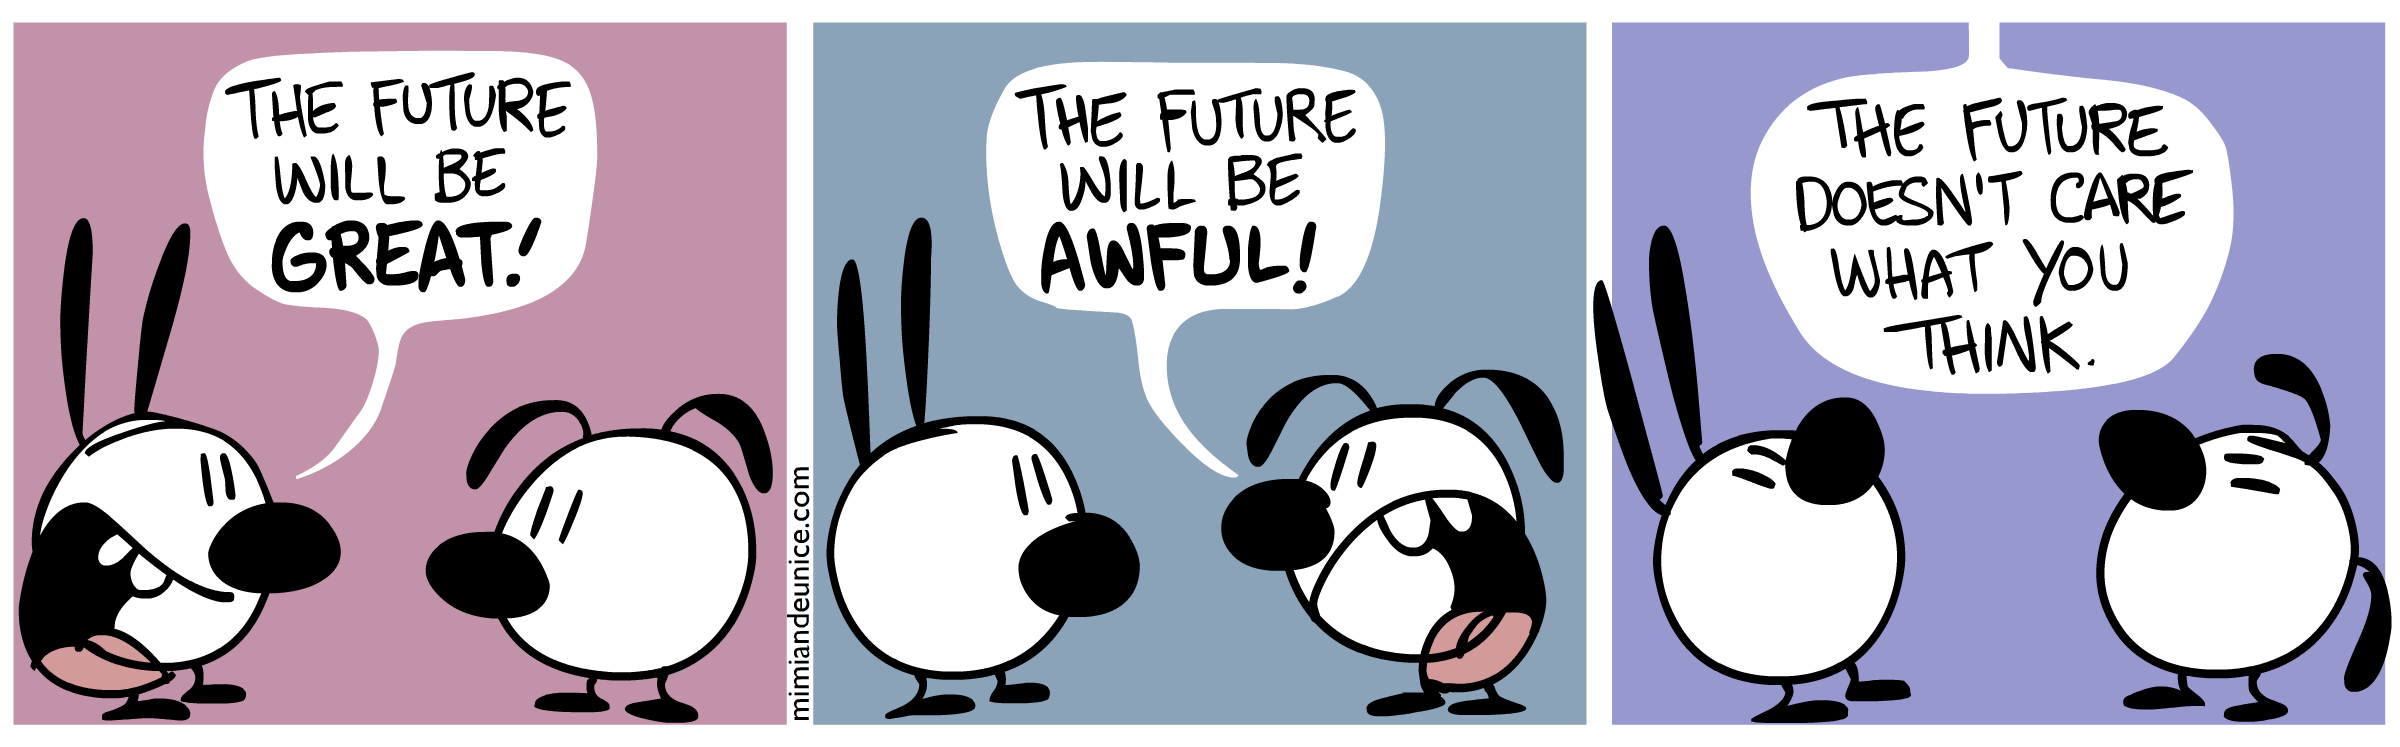 In the future, I'd like to be...